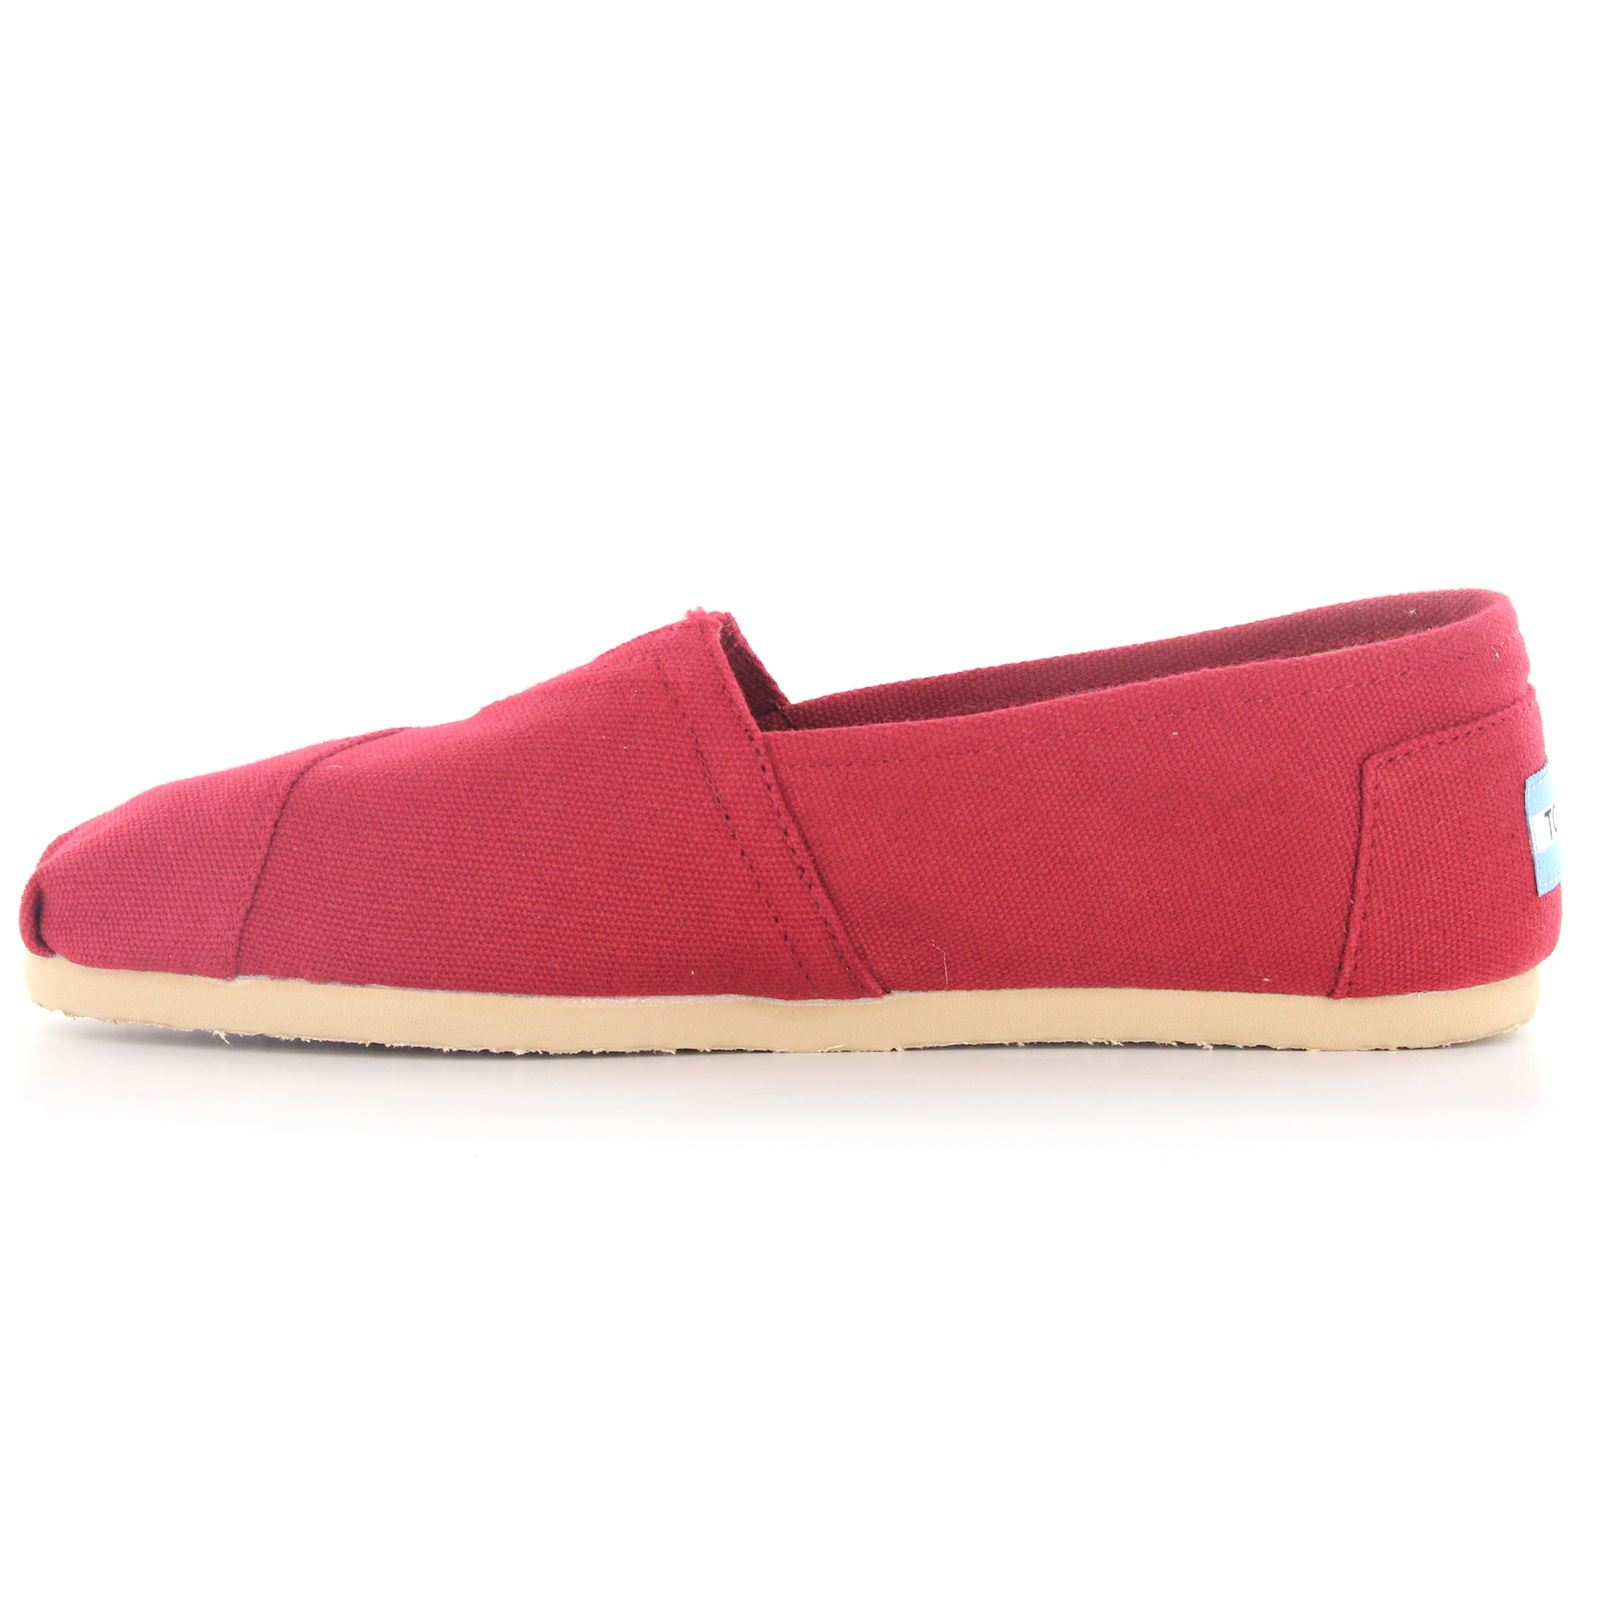 Toms shoes for women prices